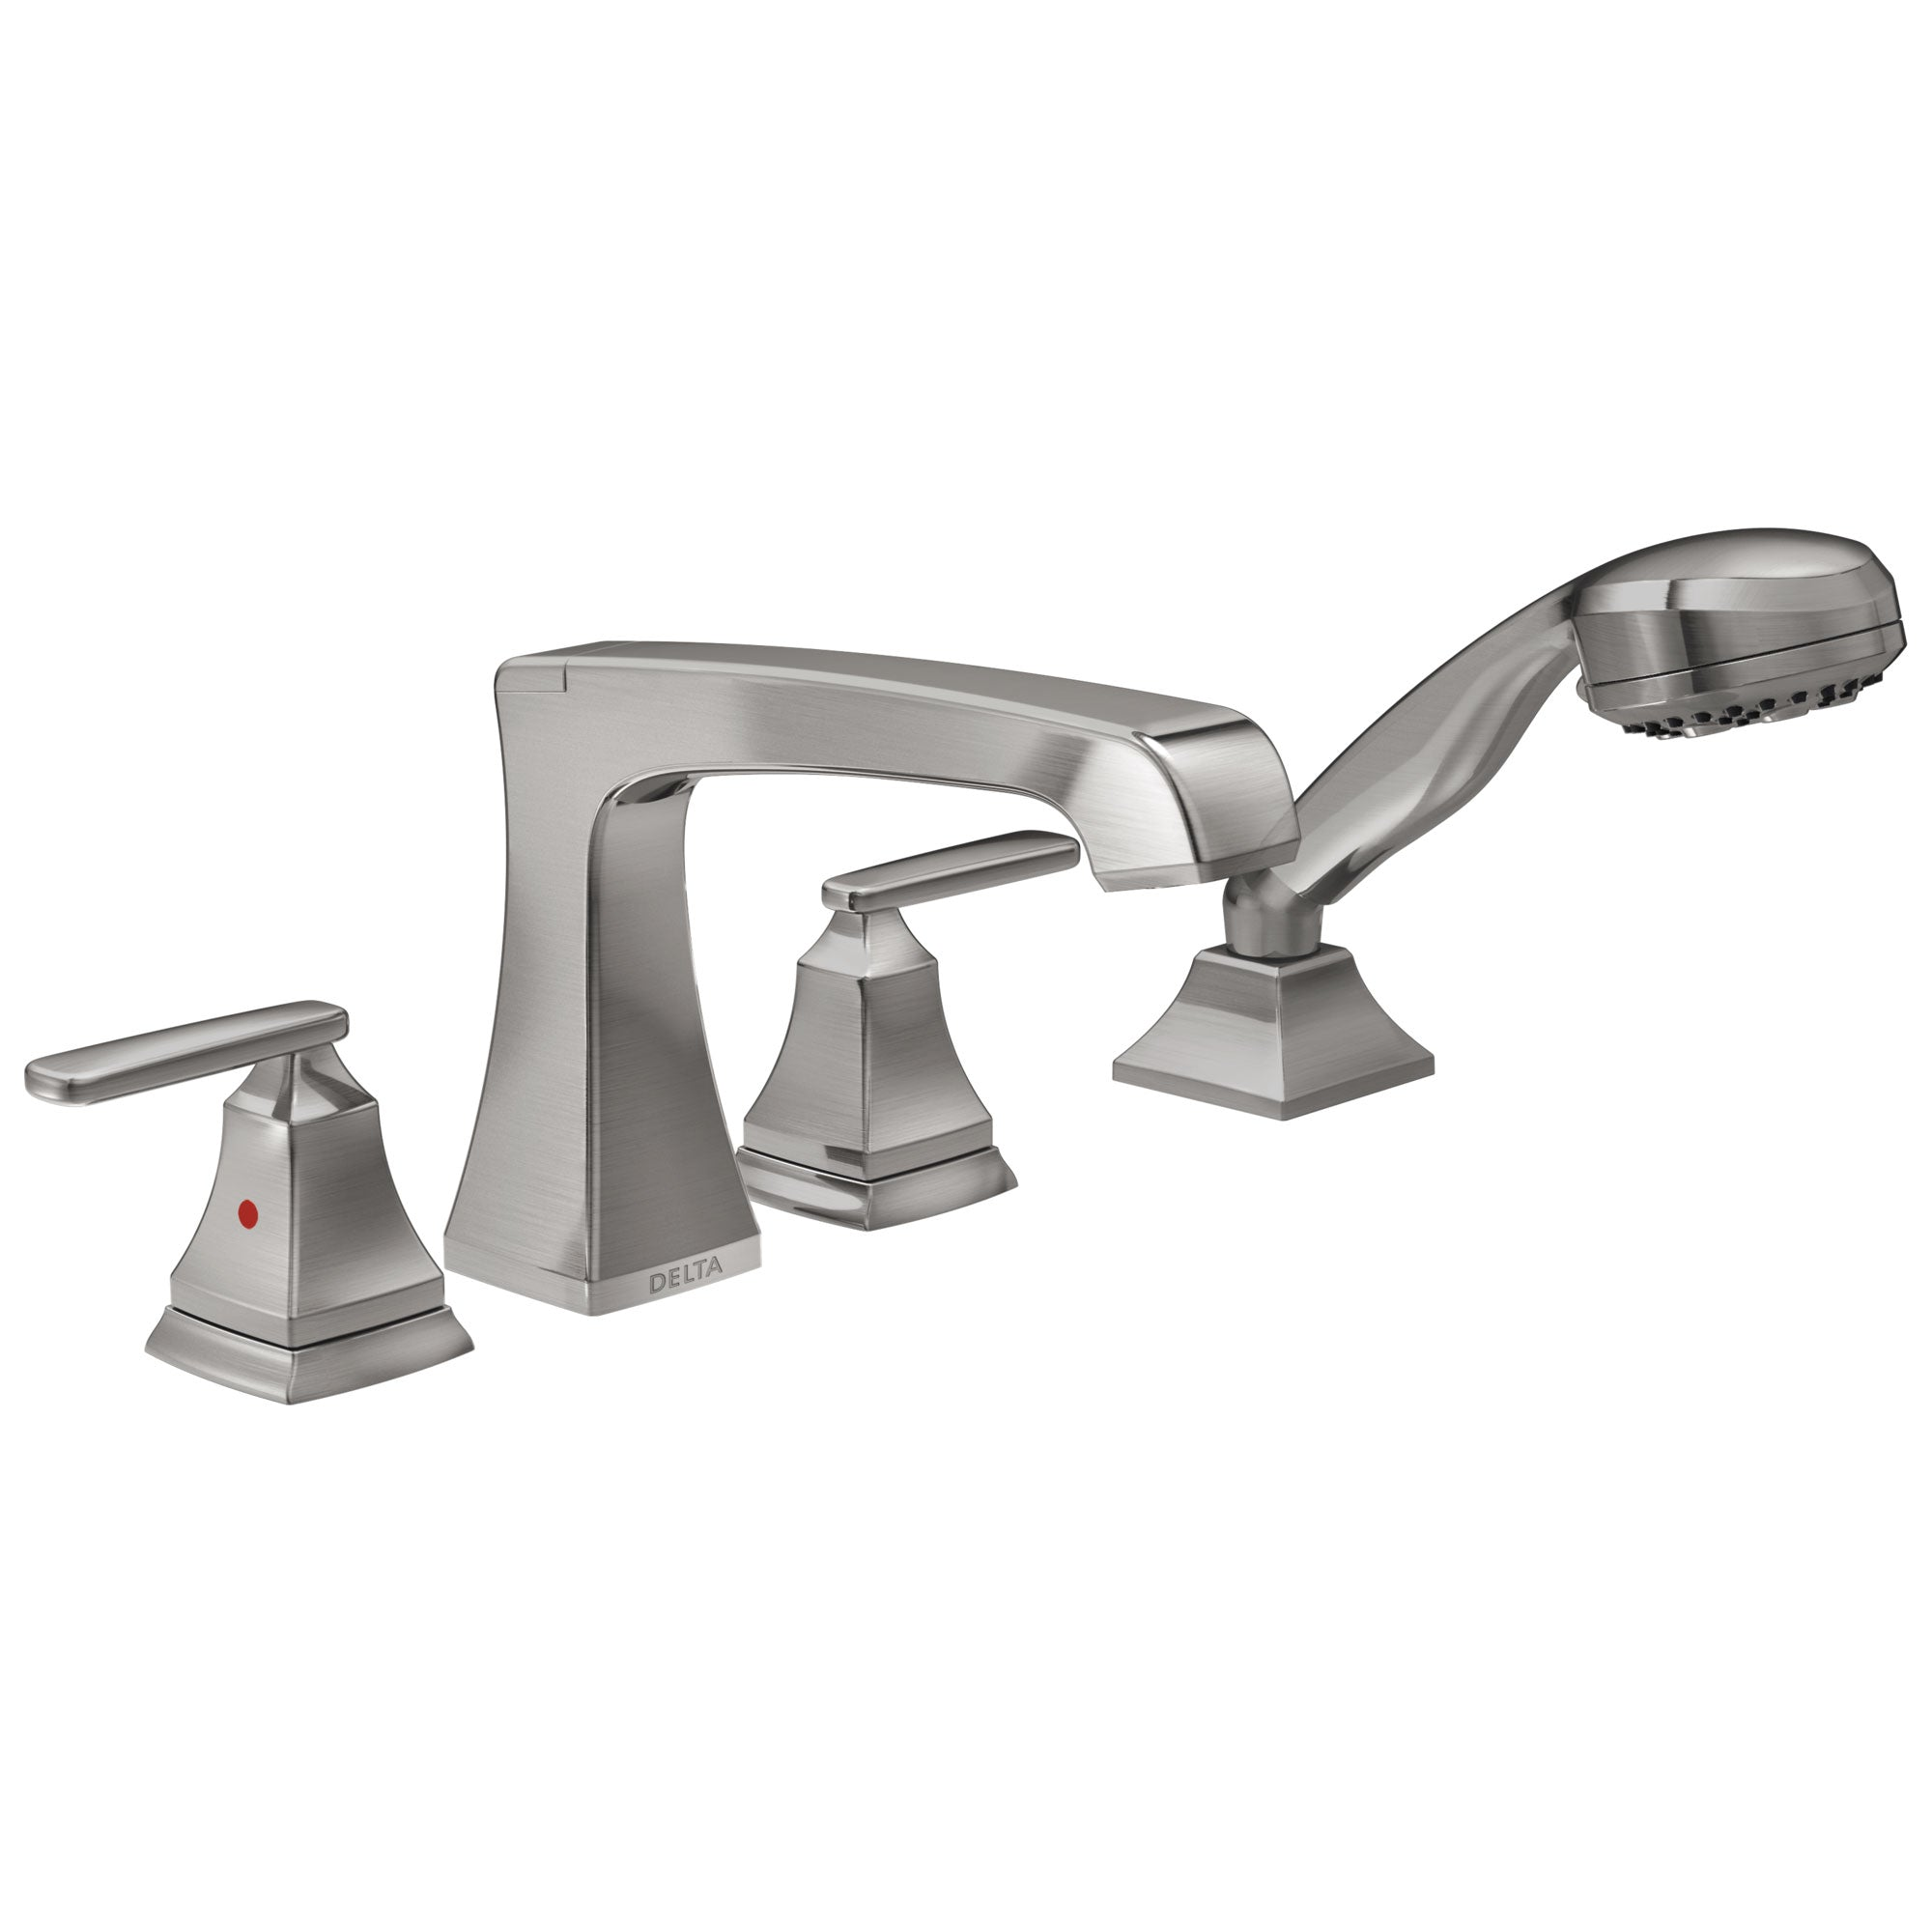 Delta Ashlyn Collection Stainless Steel Finish High Flow Roman Bath Tub Filler Faucet Trim with Hand Shower Sprayer Includes Trim Kit and Rough-in Valve D2074V